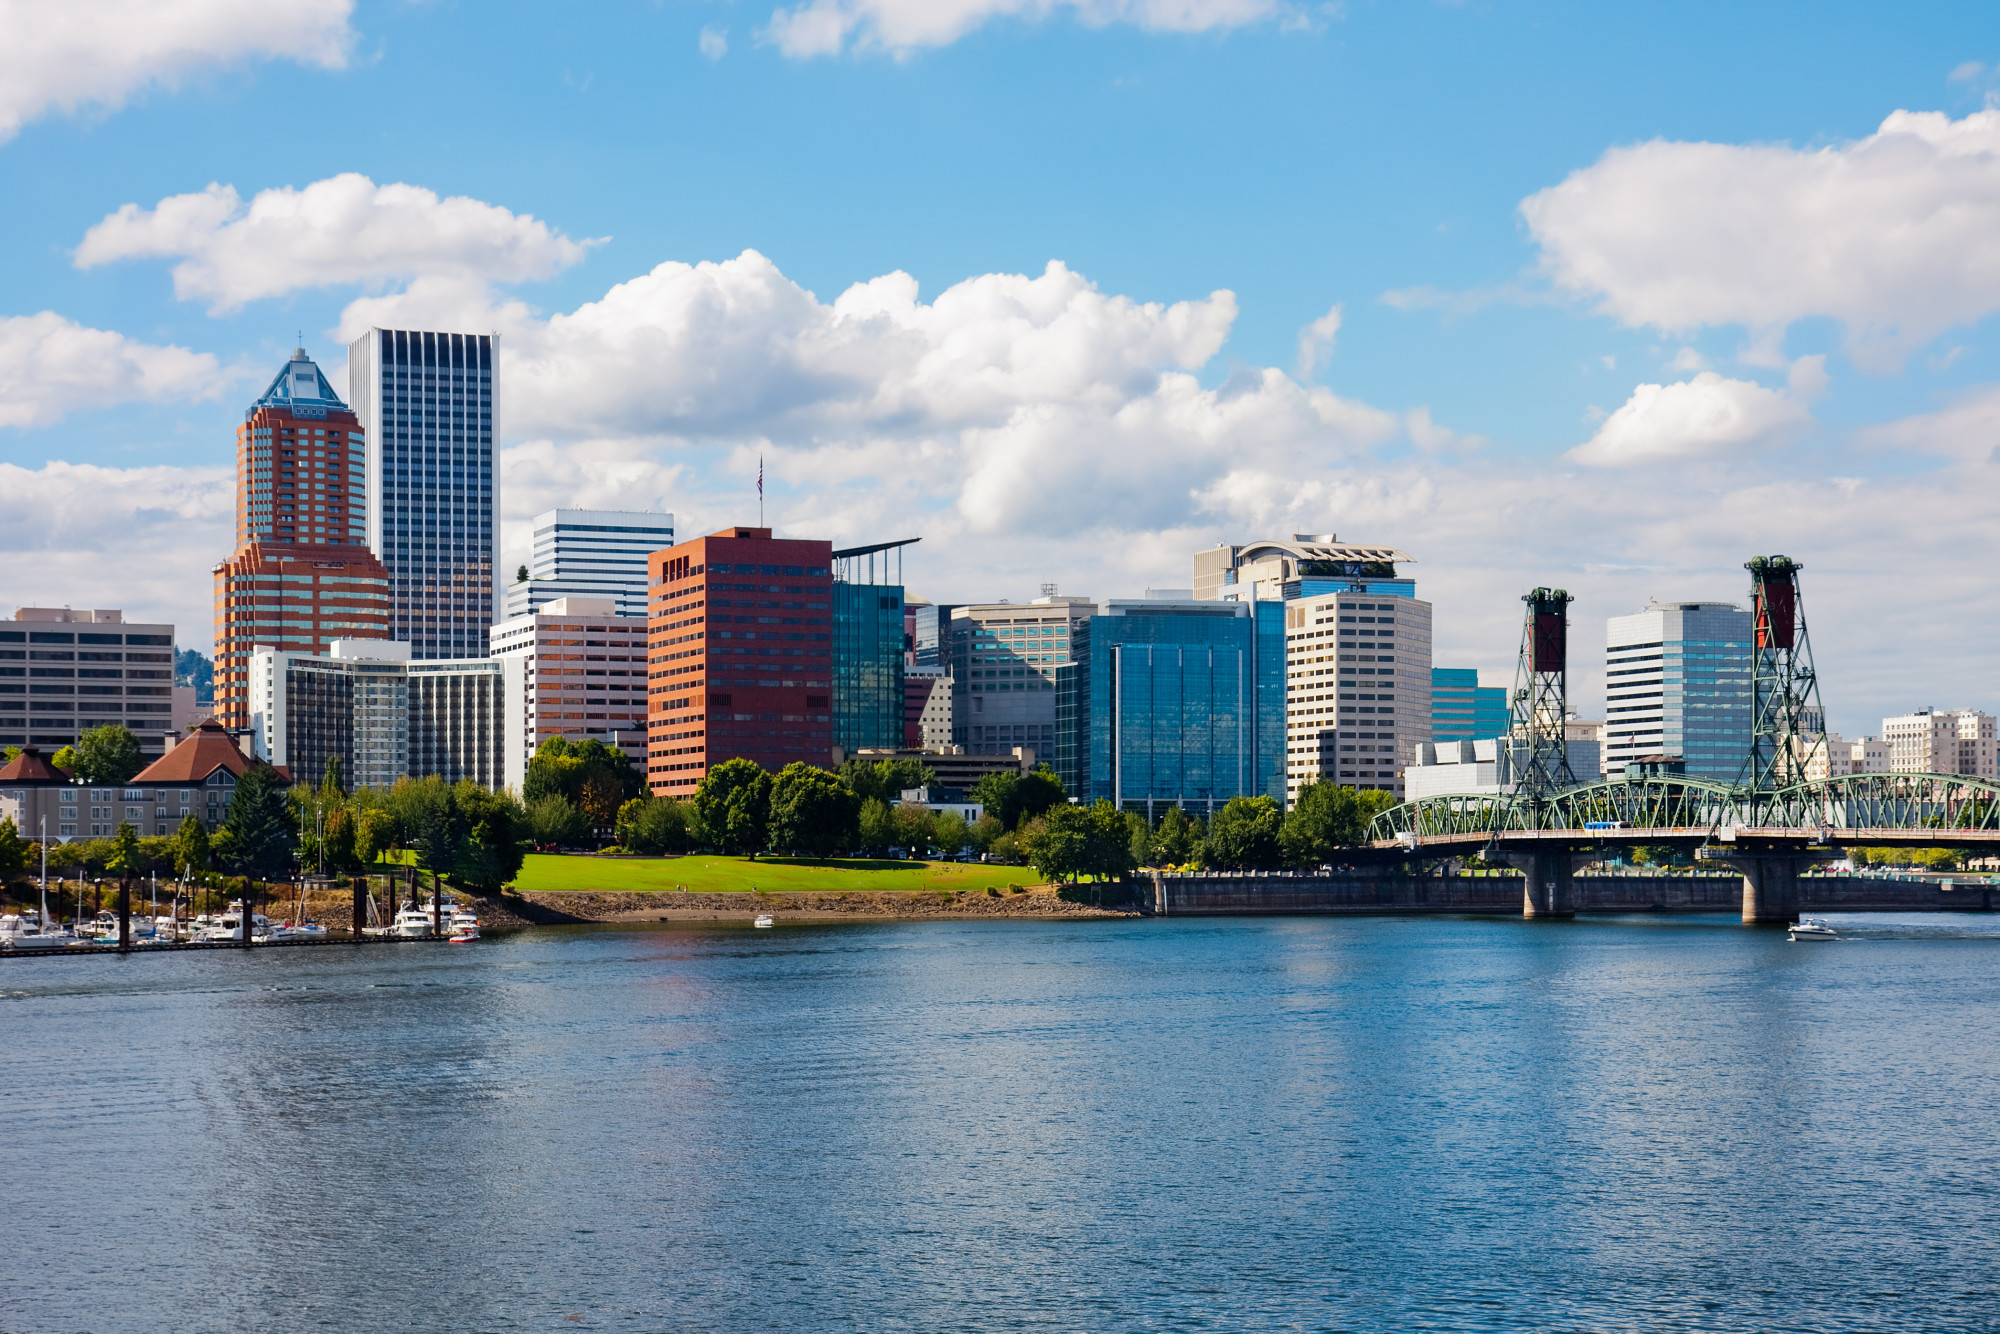 A picture of downtown Portland, Oregon across from the river on a sunny summer day.